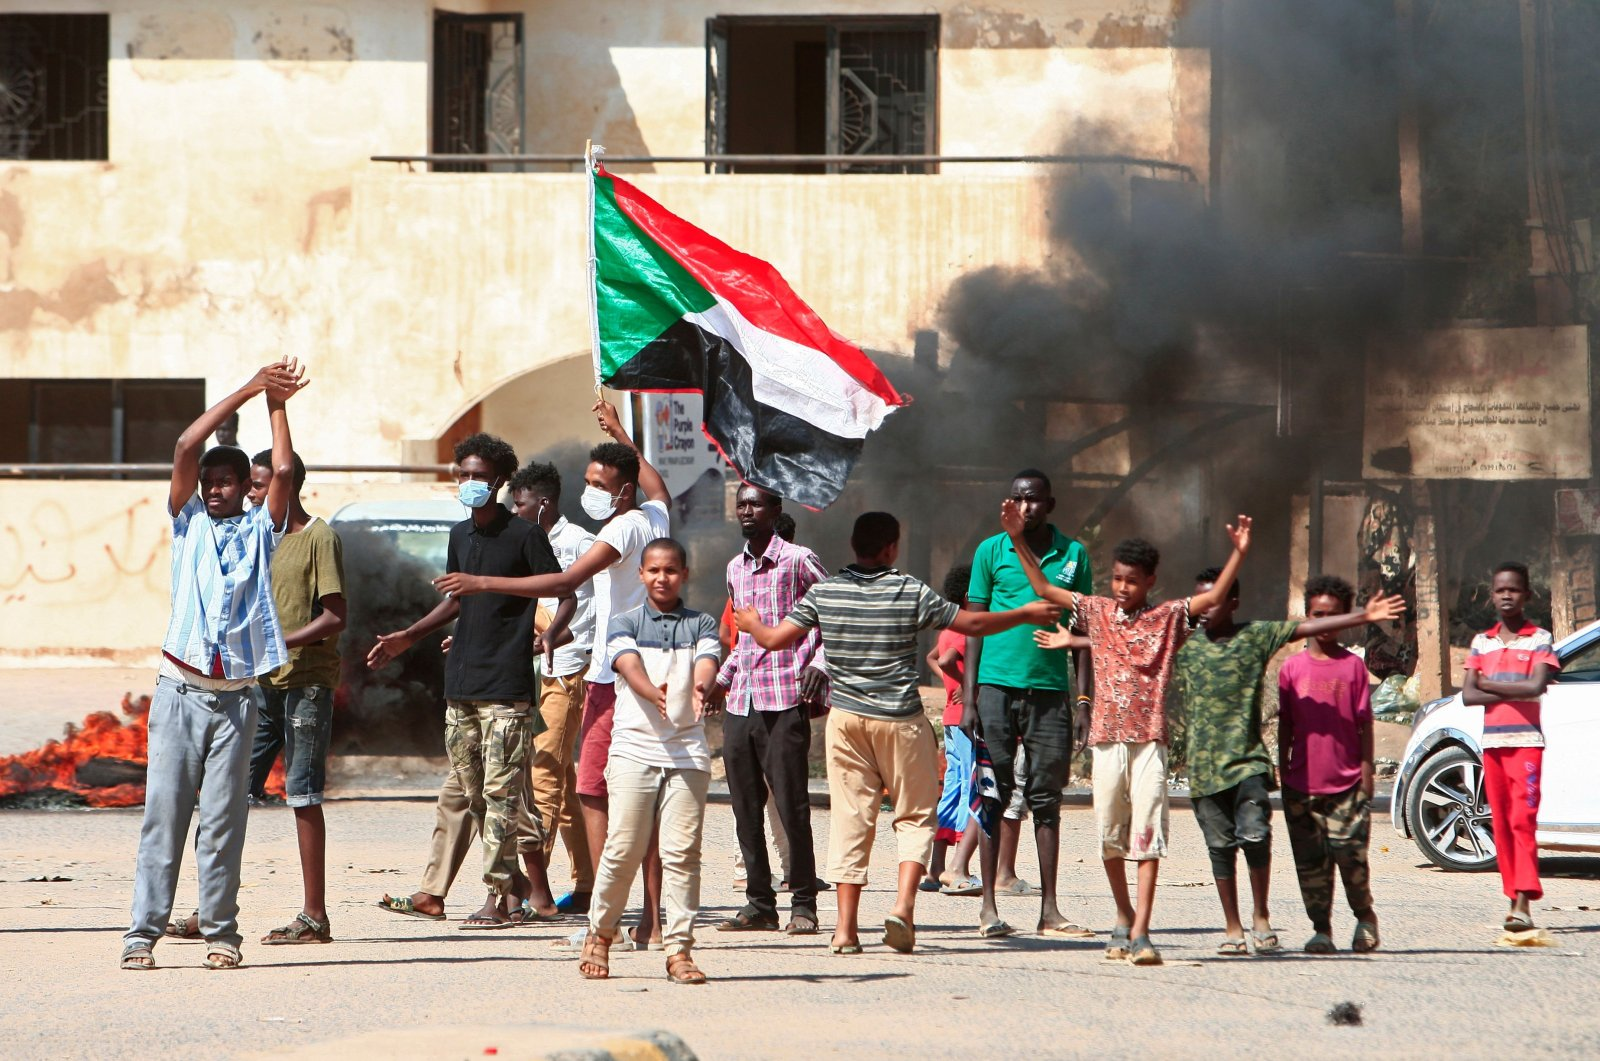 Sudanese protesters take to the streets in Khartoum, Oct. 21, 2020. (AFP Photo)